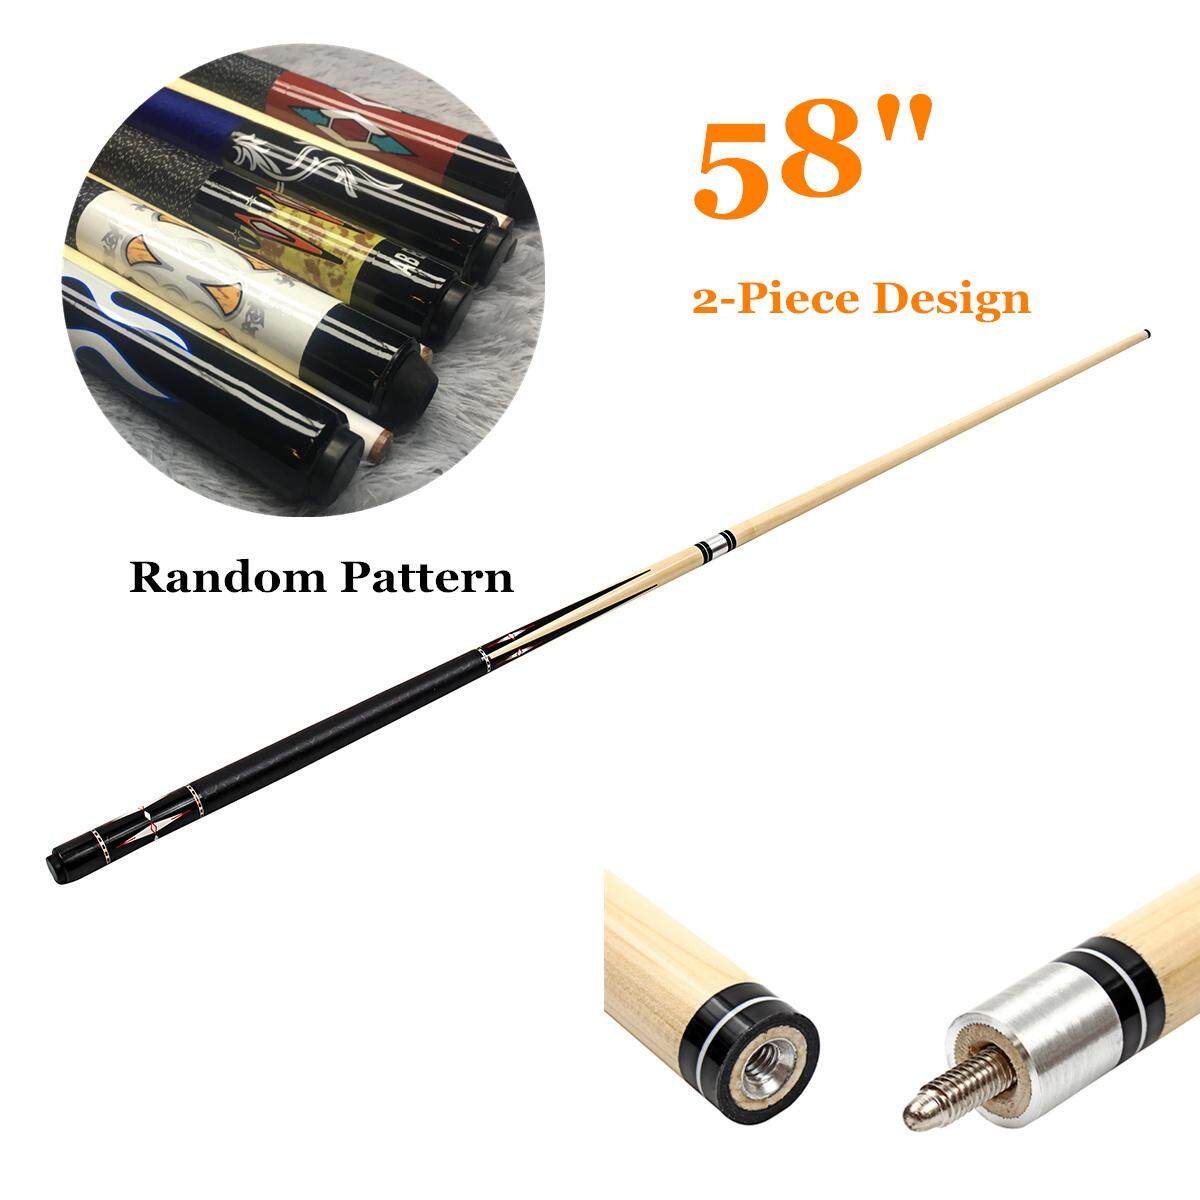 1*58 Pool Cue Billiard House Bar Pool Cue Sticks Random Color Free Shipping Us By Freebang.